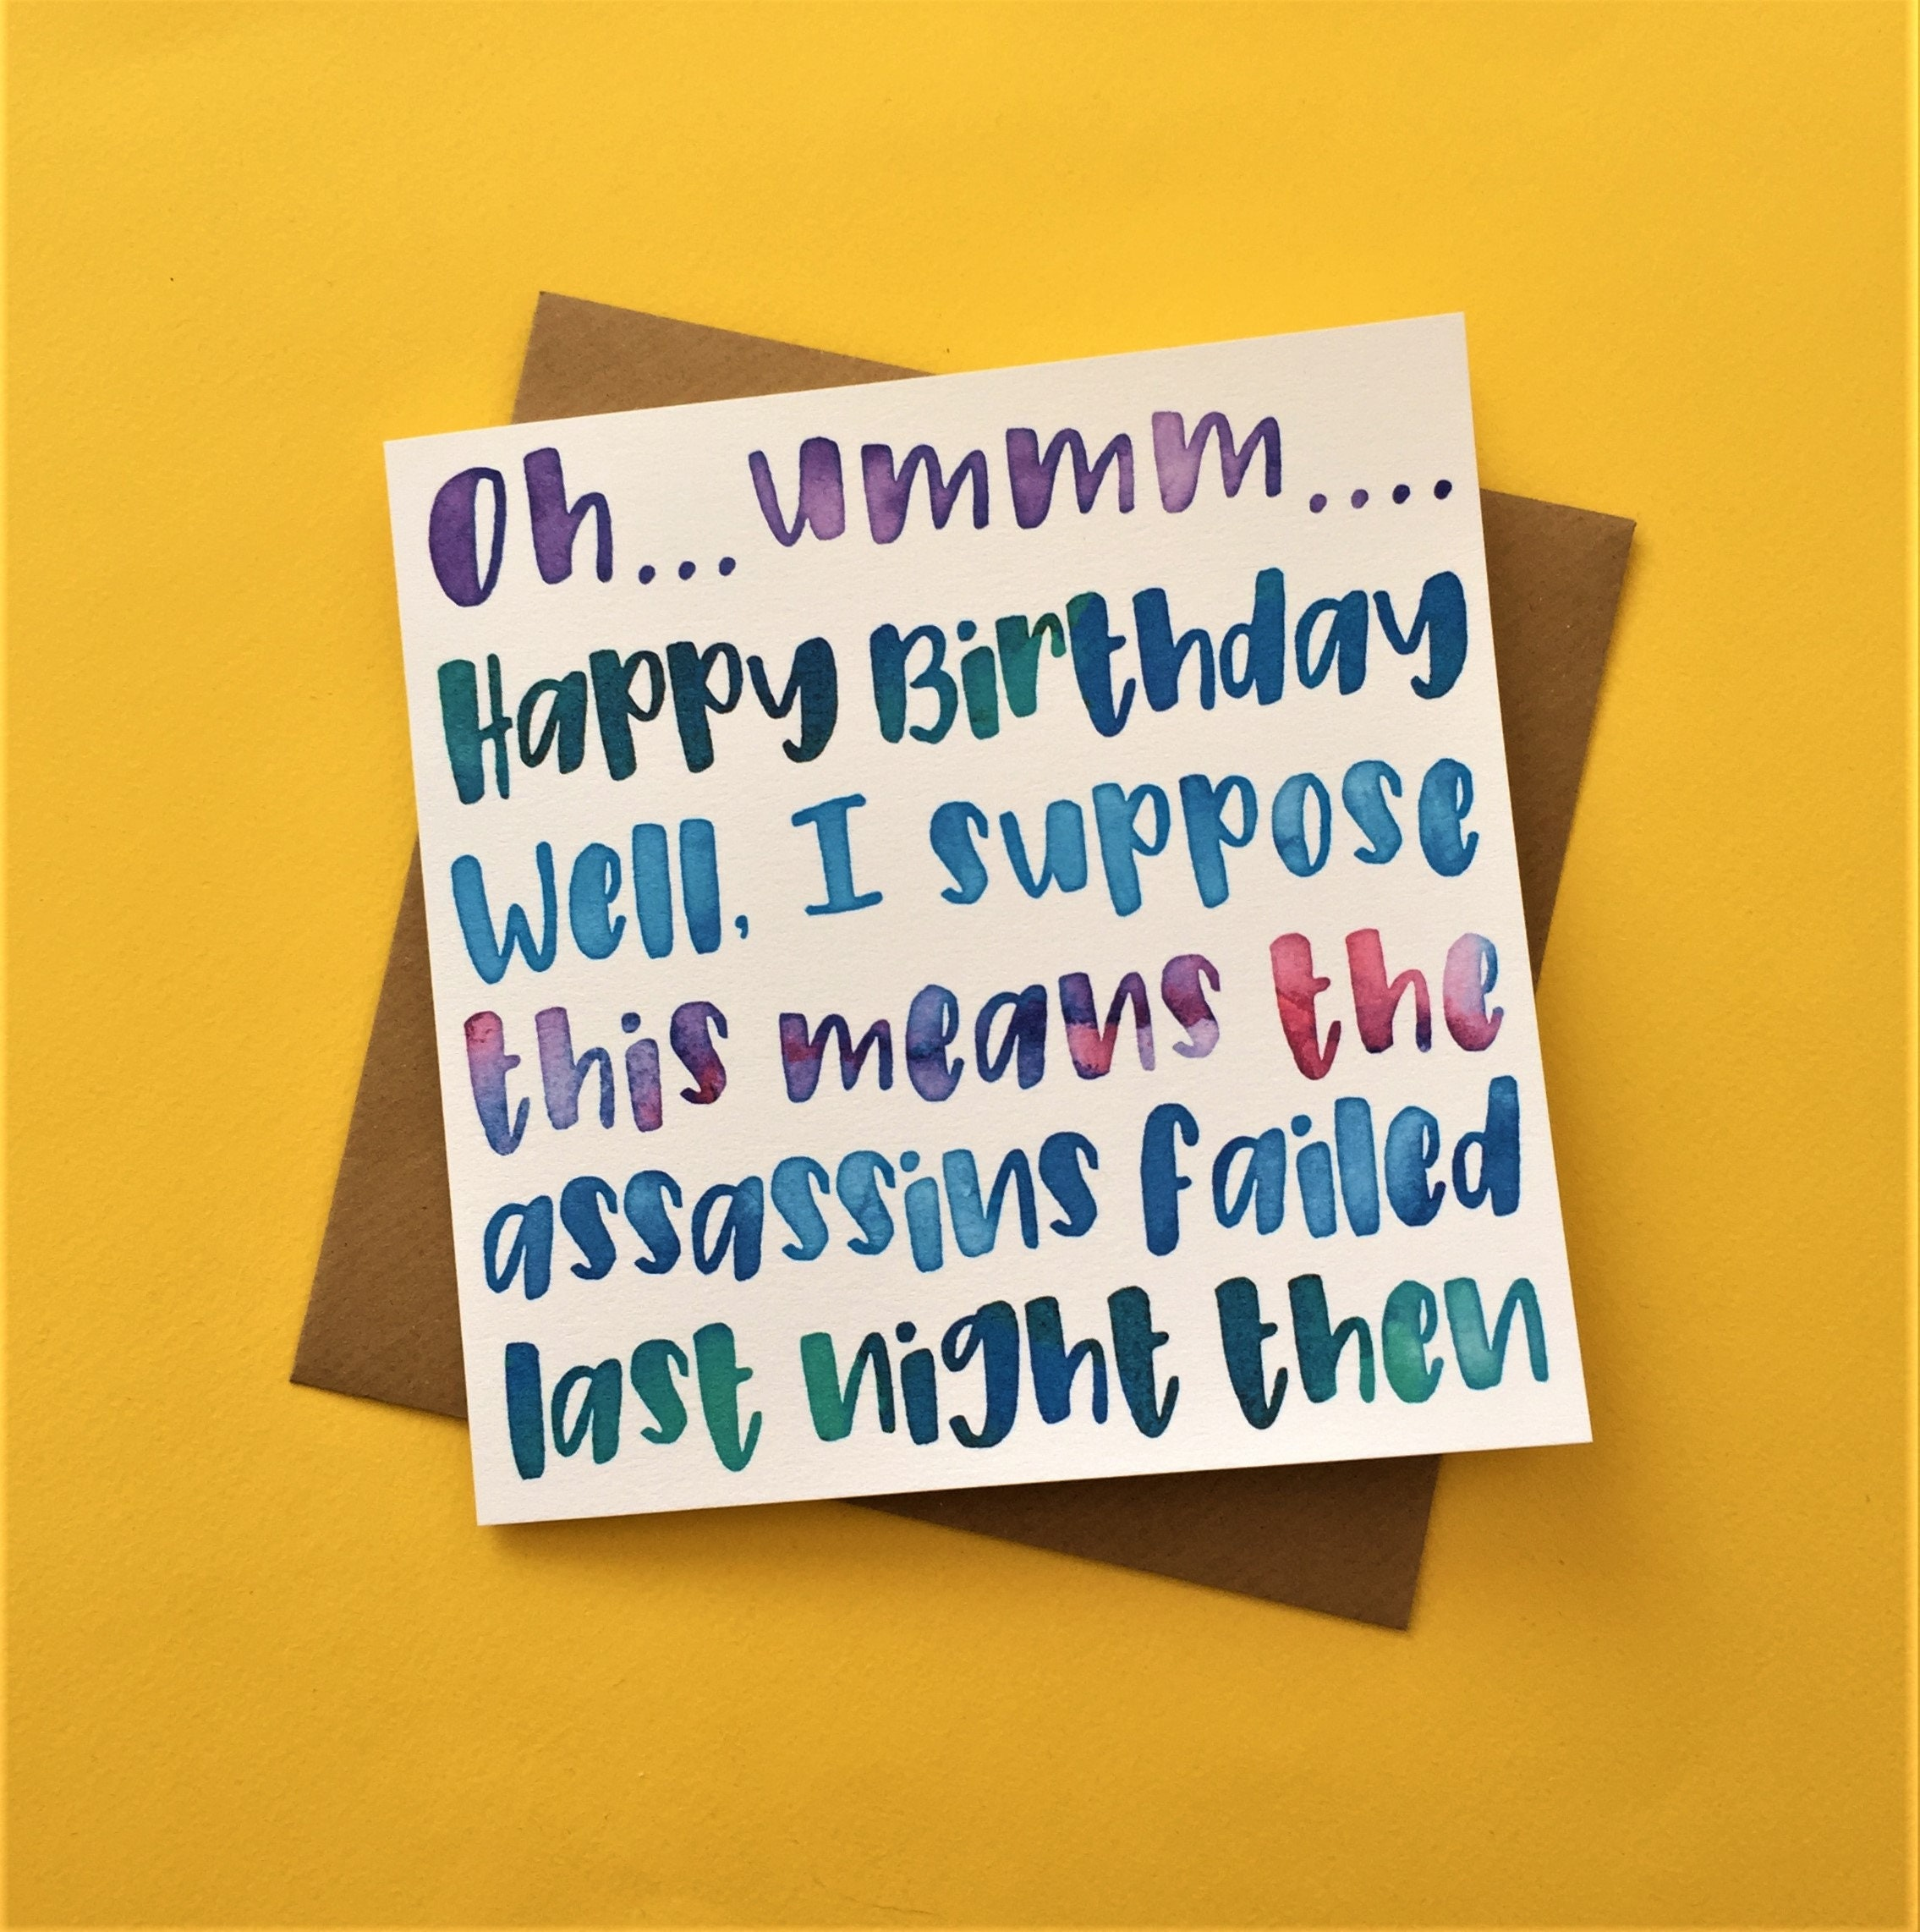 Funny Birthday Card Suppose This Means The Assassins Failed